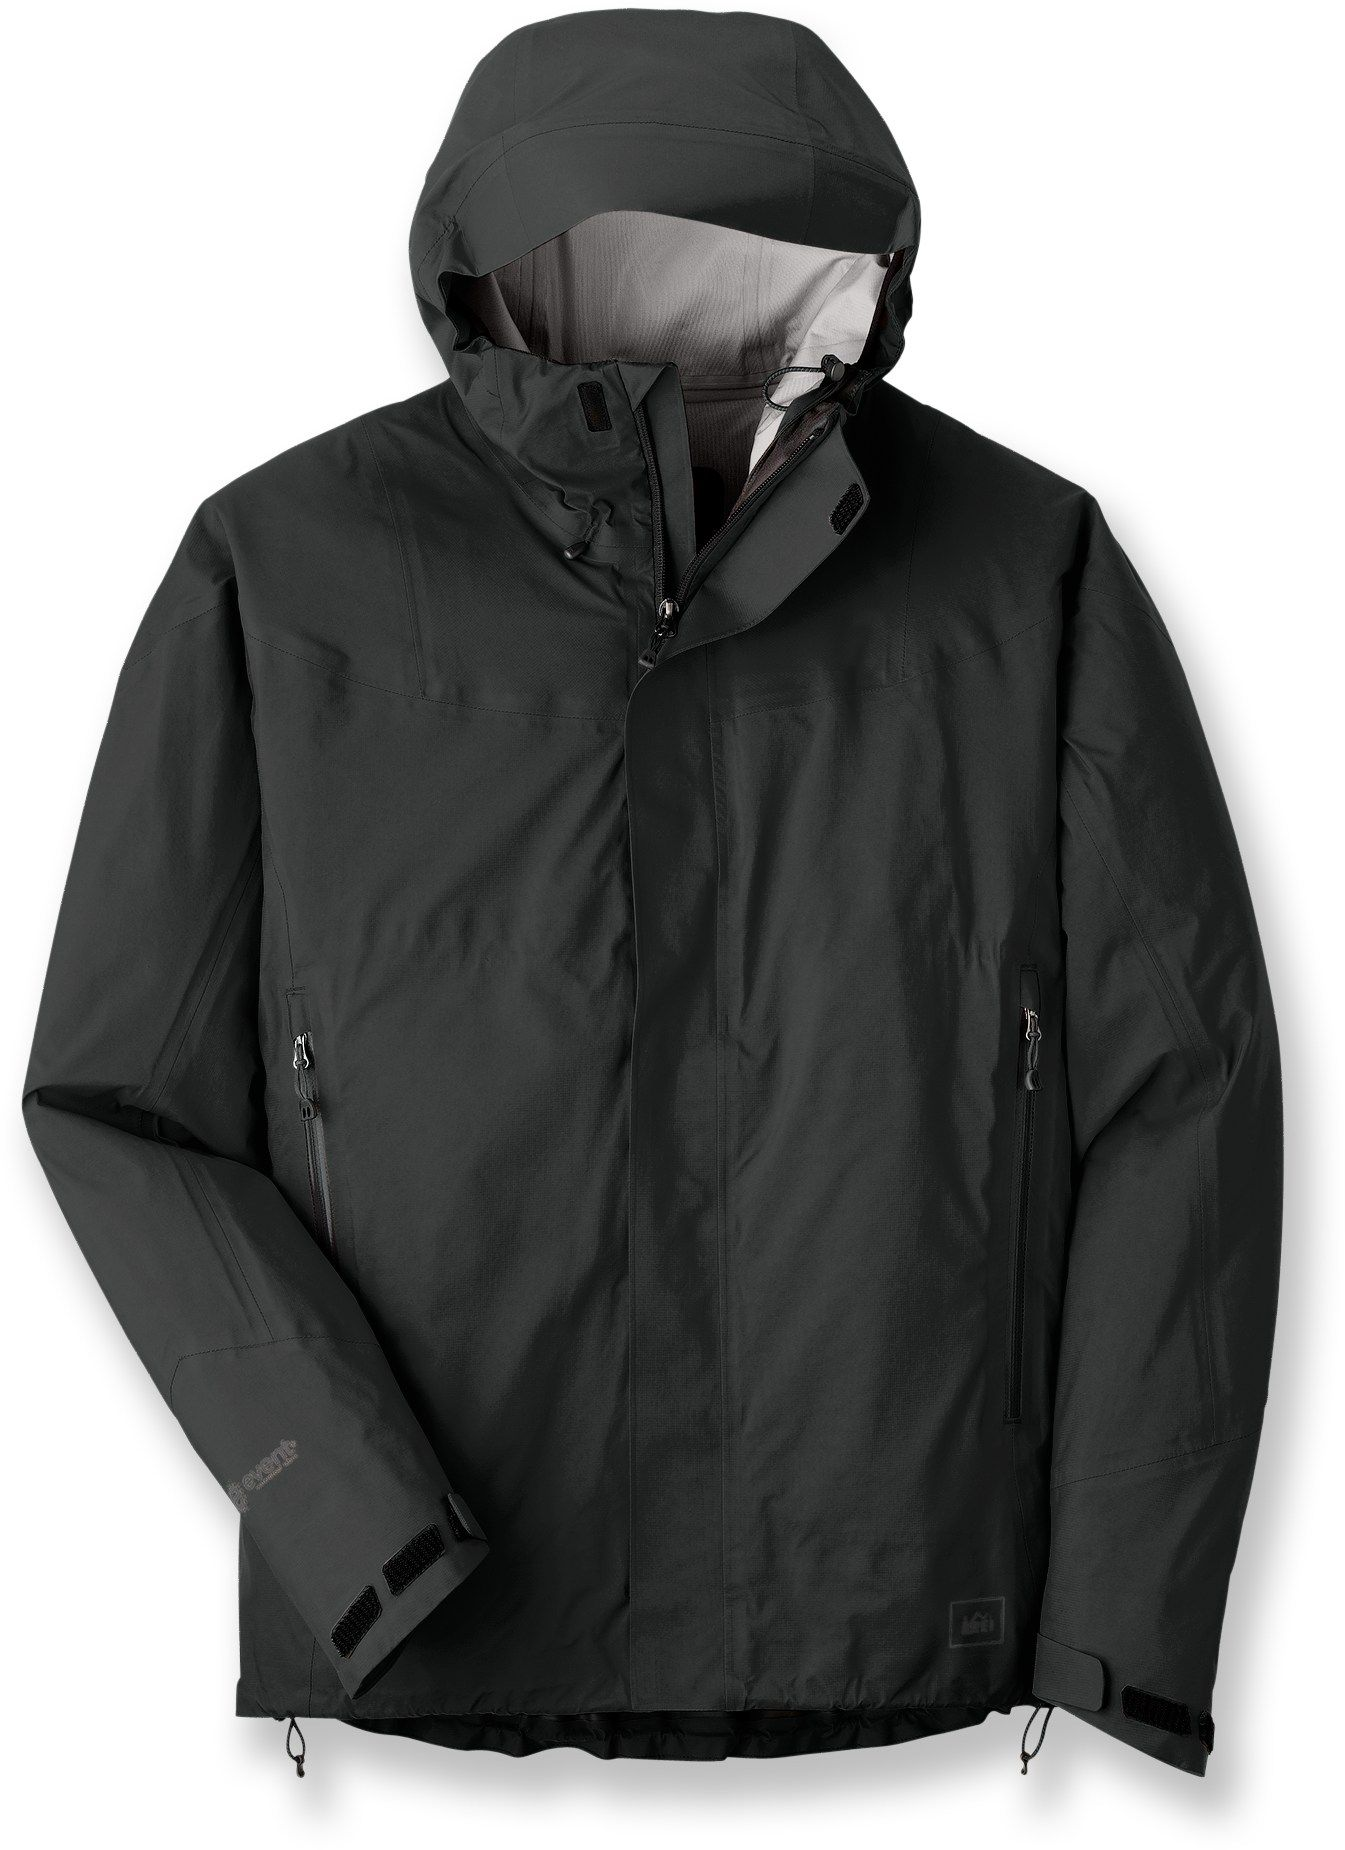 7f20c40b29 REI Kimtah Rain Jacket with eVent fabric technology...forget about  Goretex...how about not suffocating in your rain gear? eVent is air  permeable and ...